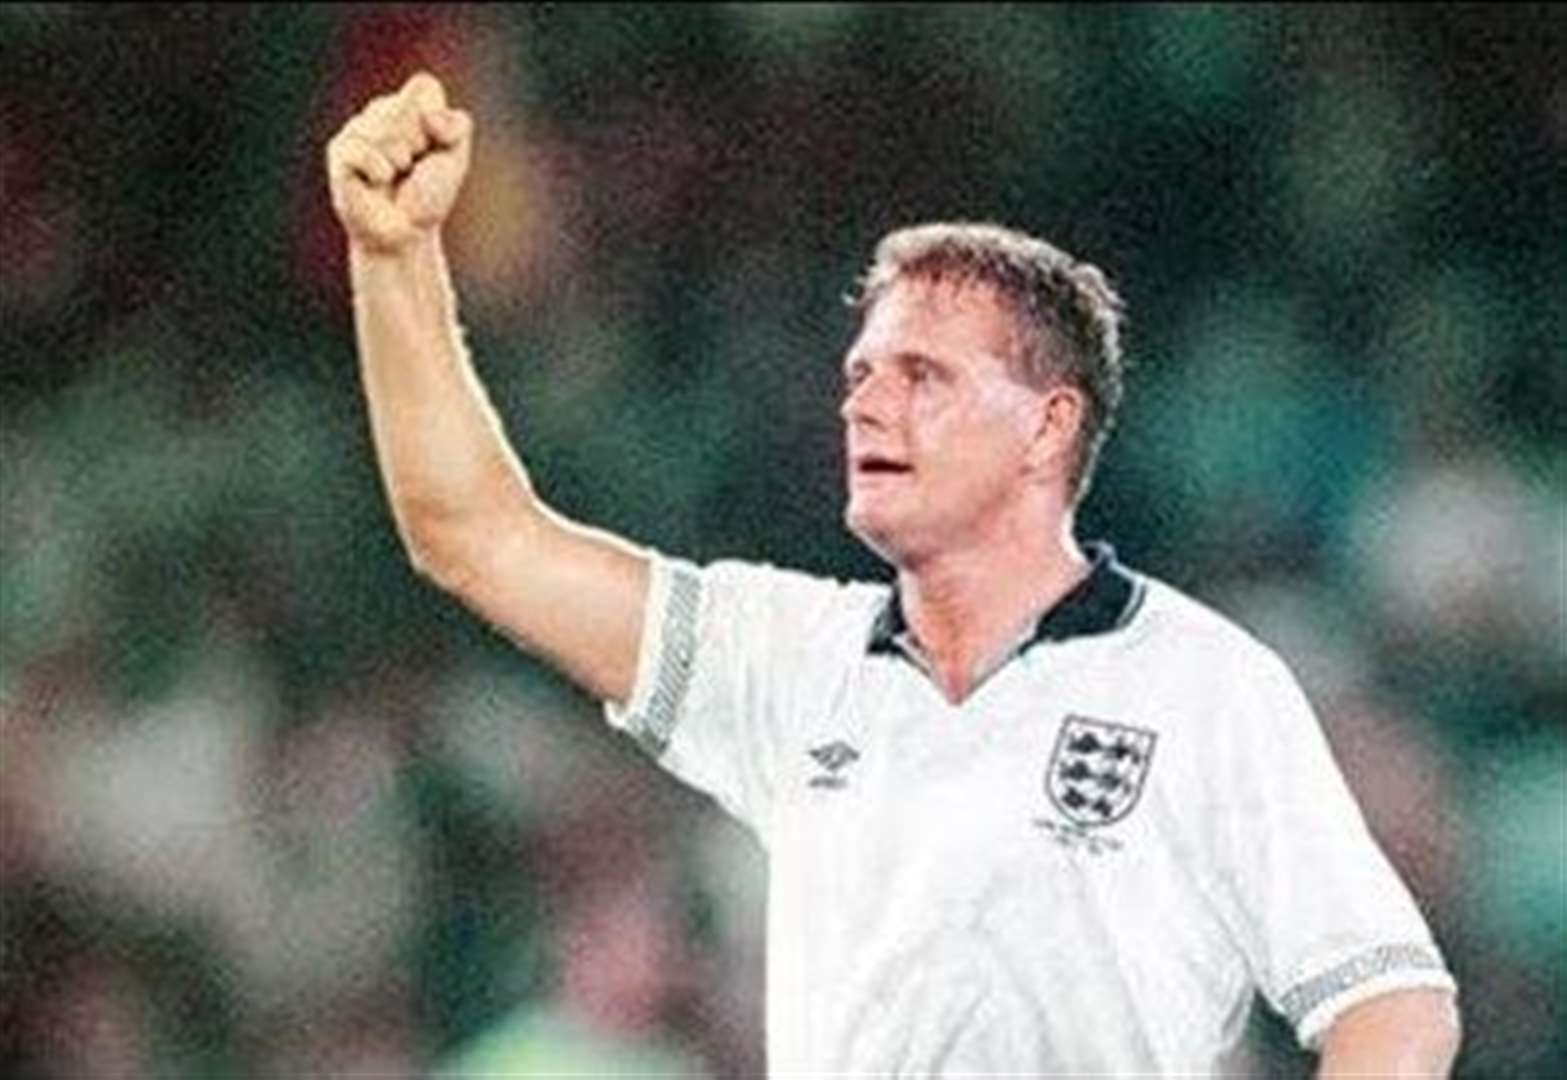 Paul Gascoigne is coming to Grantham collectables shop